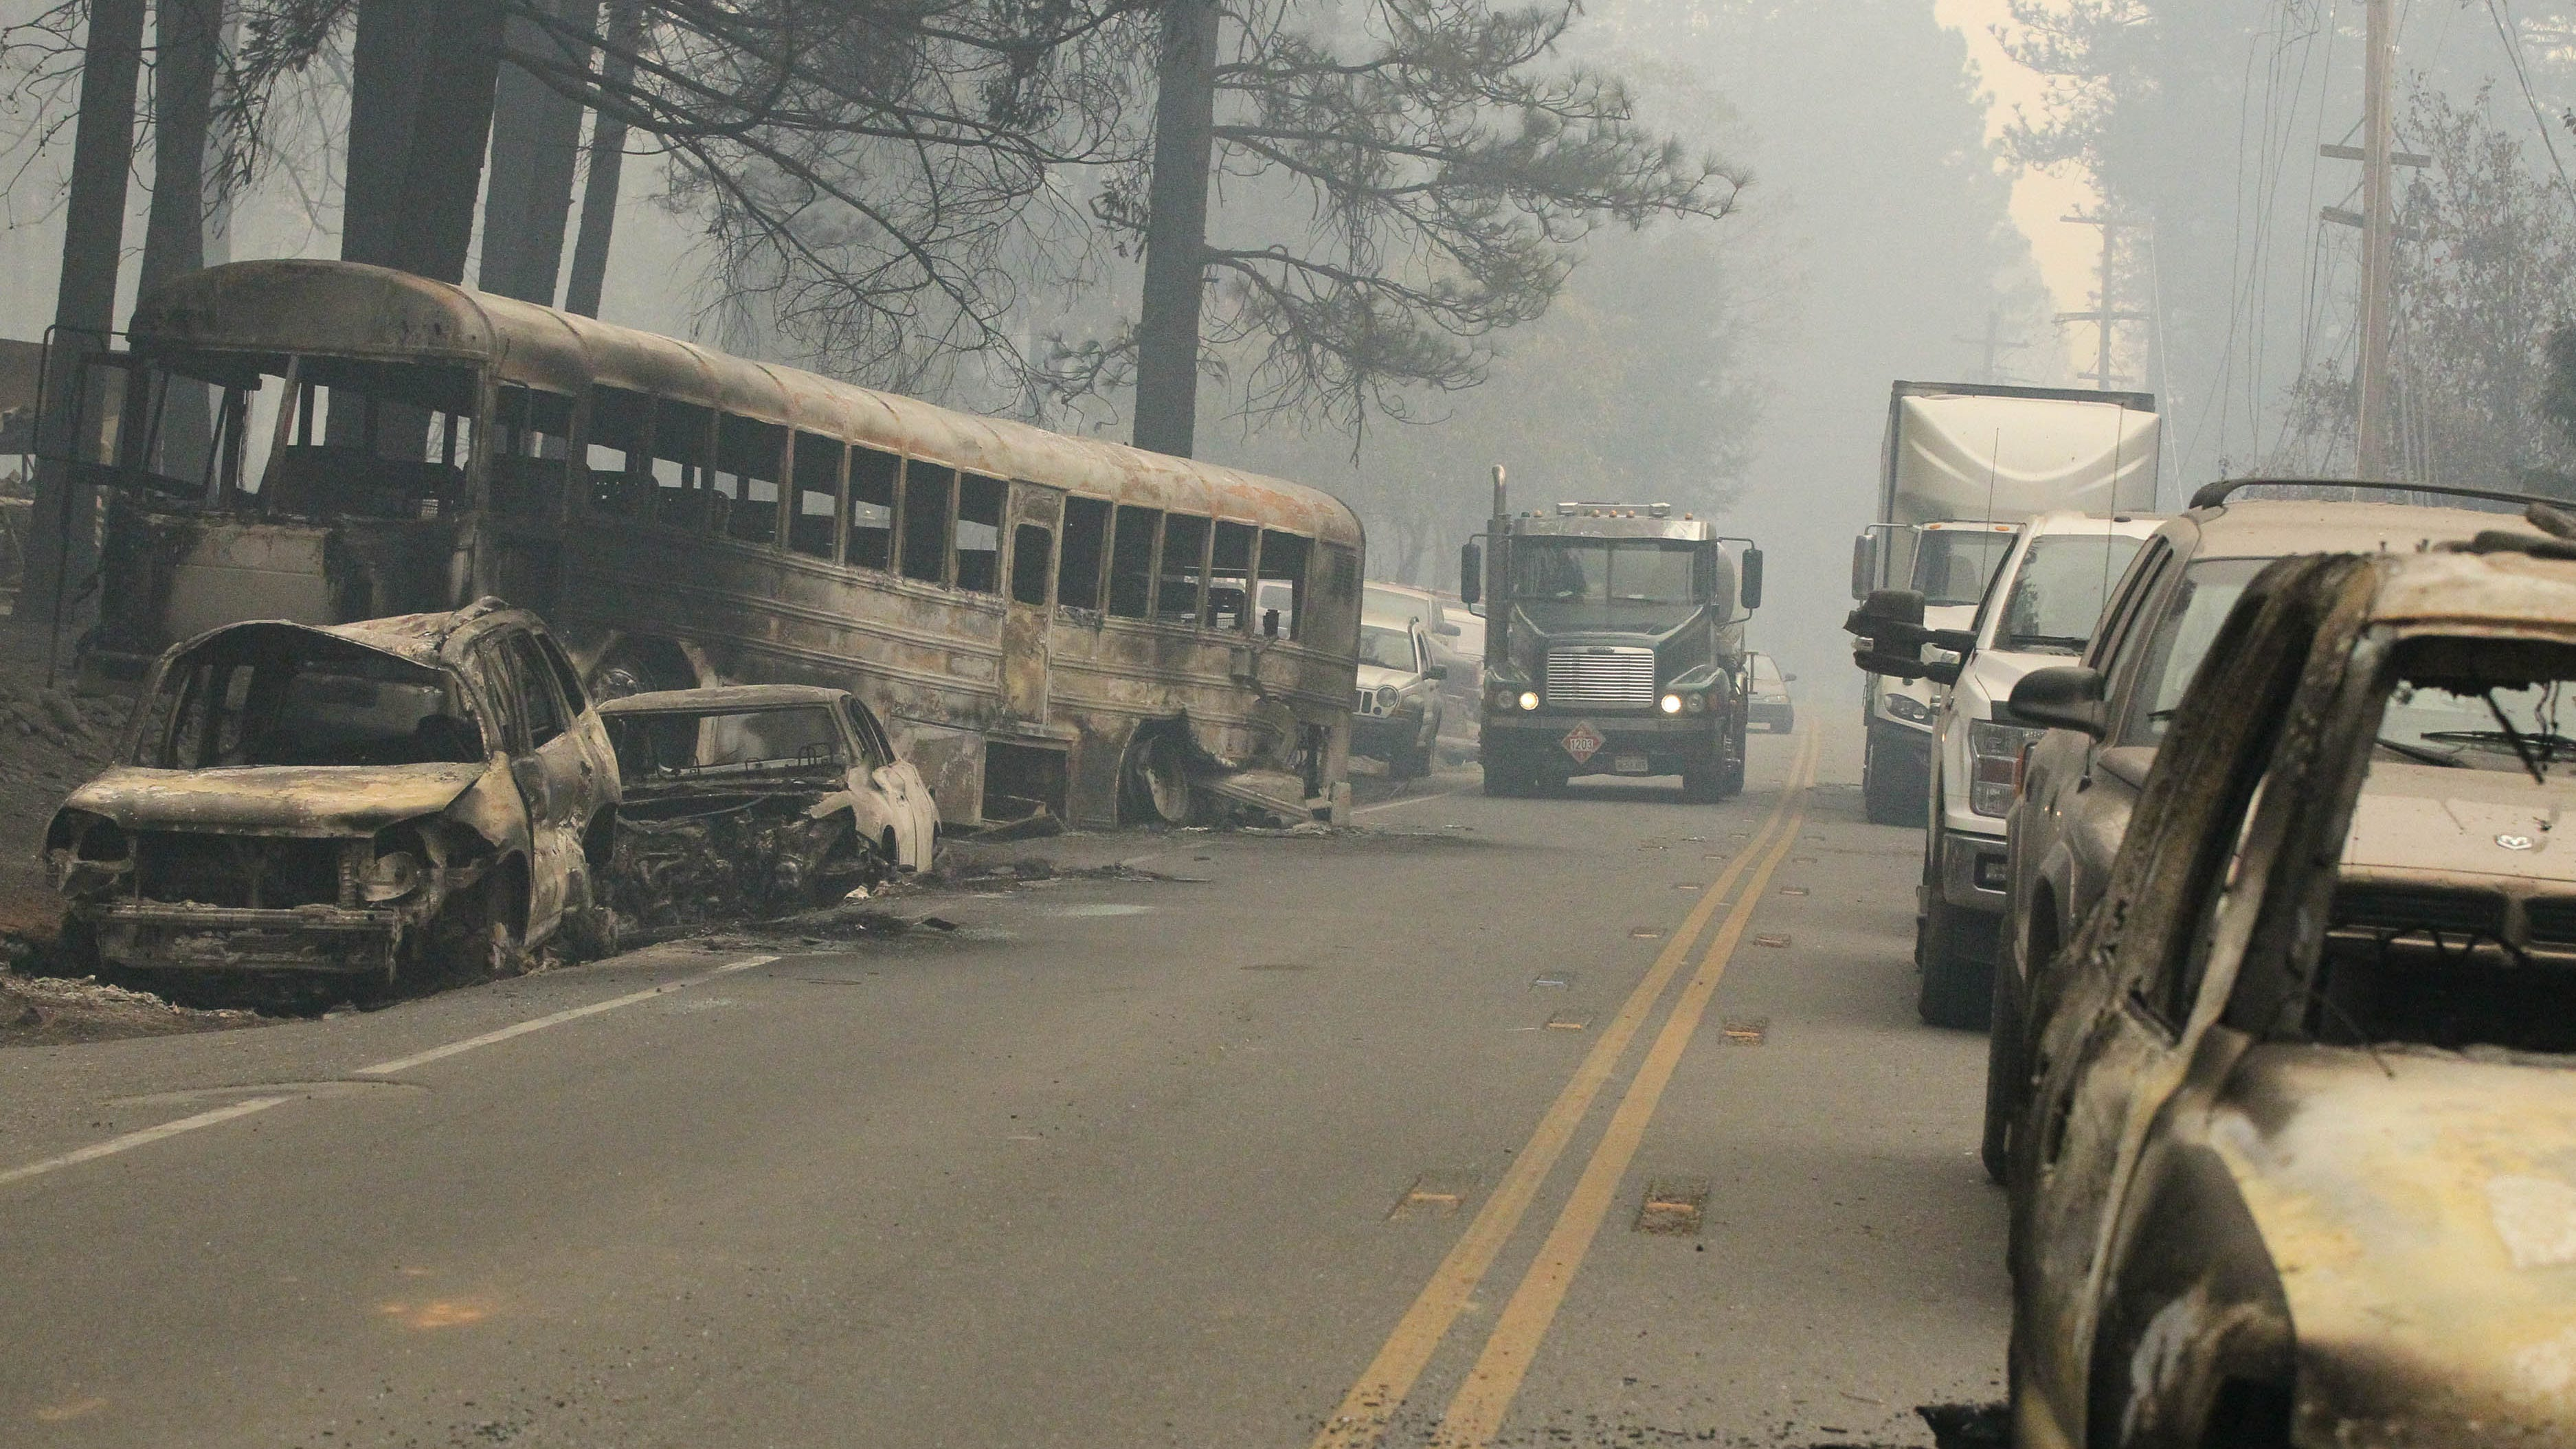 California wildfire evacuations are becoming deadly traffic jams